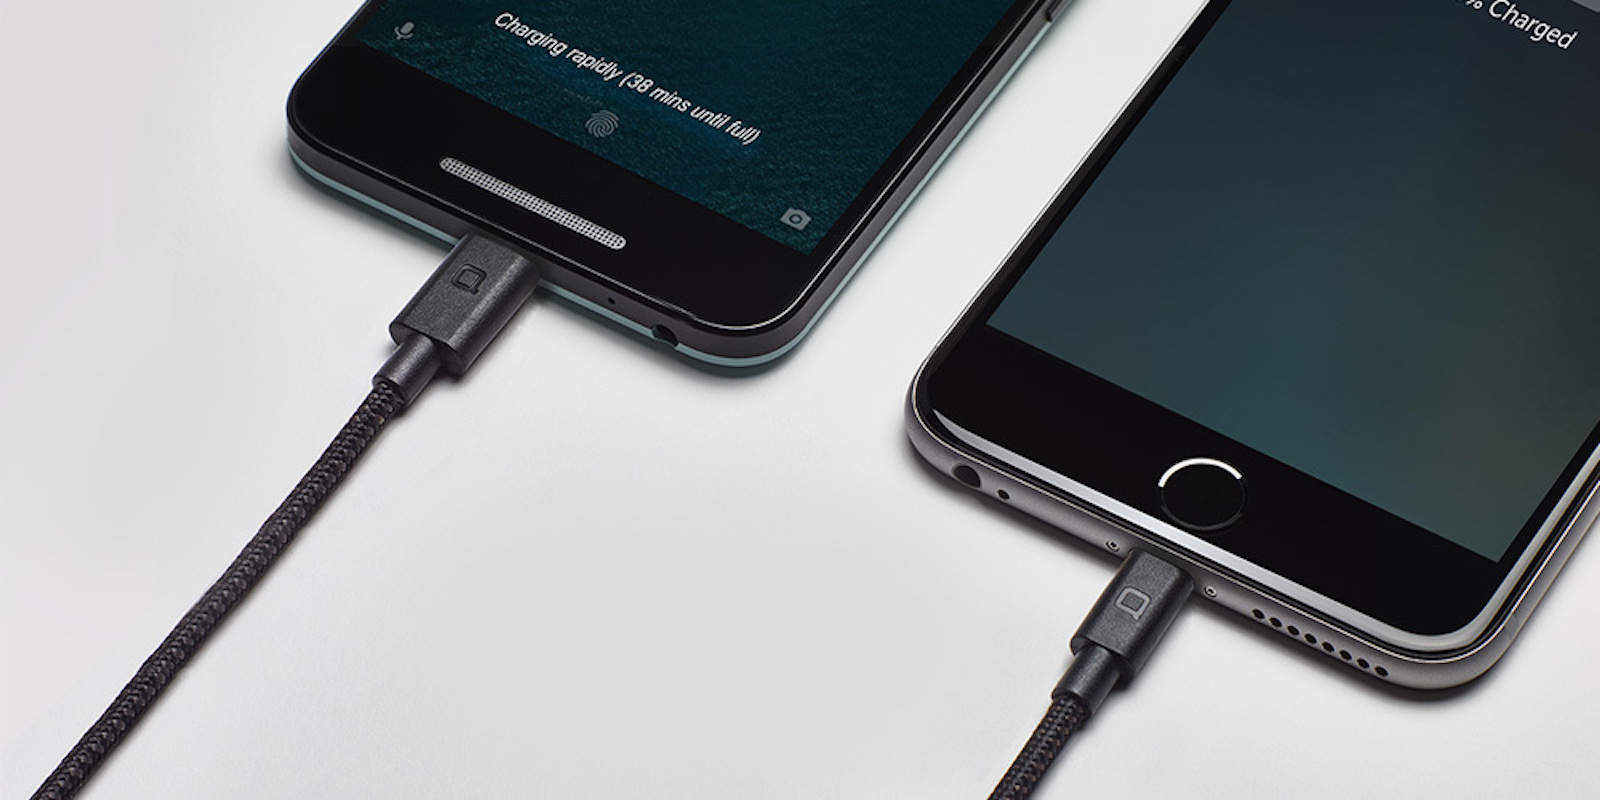 This kevlar-encased Lightning cable is built to last.